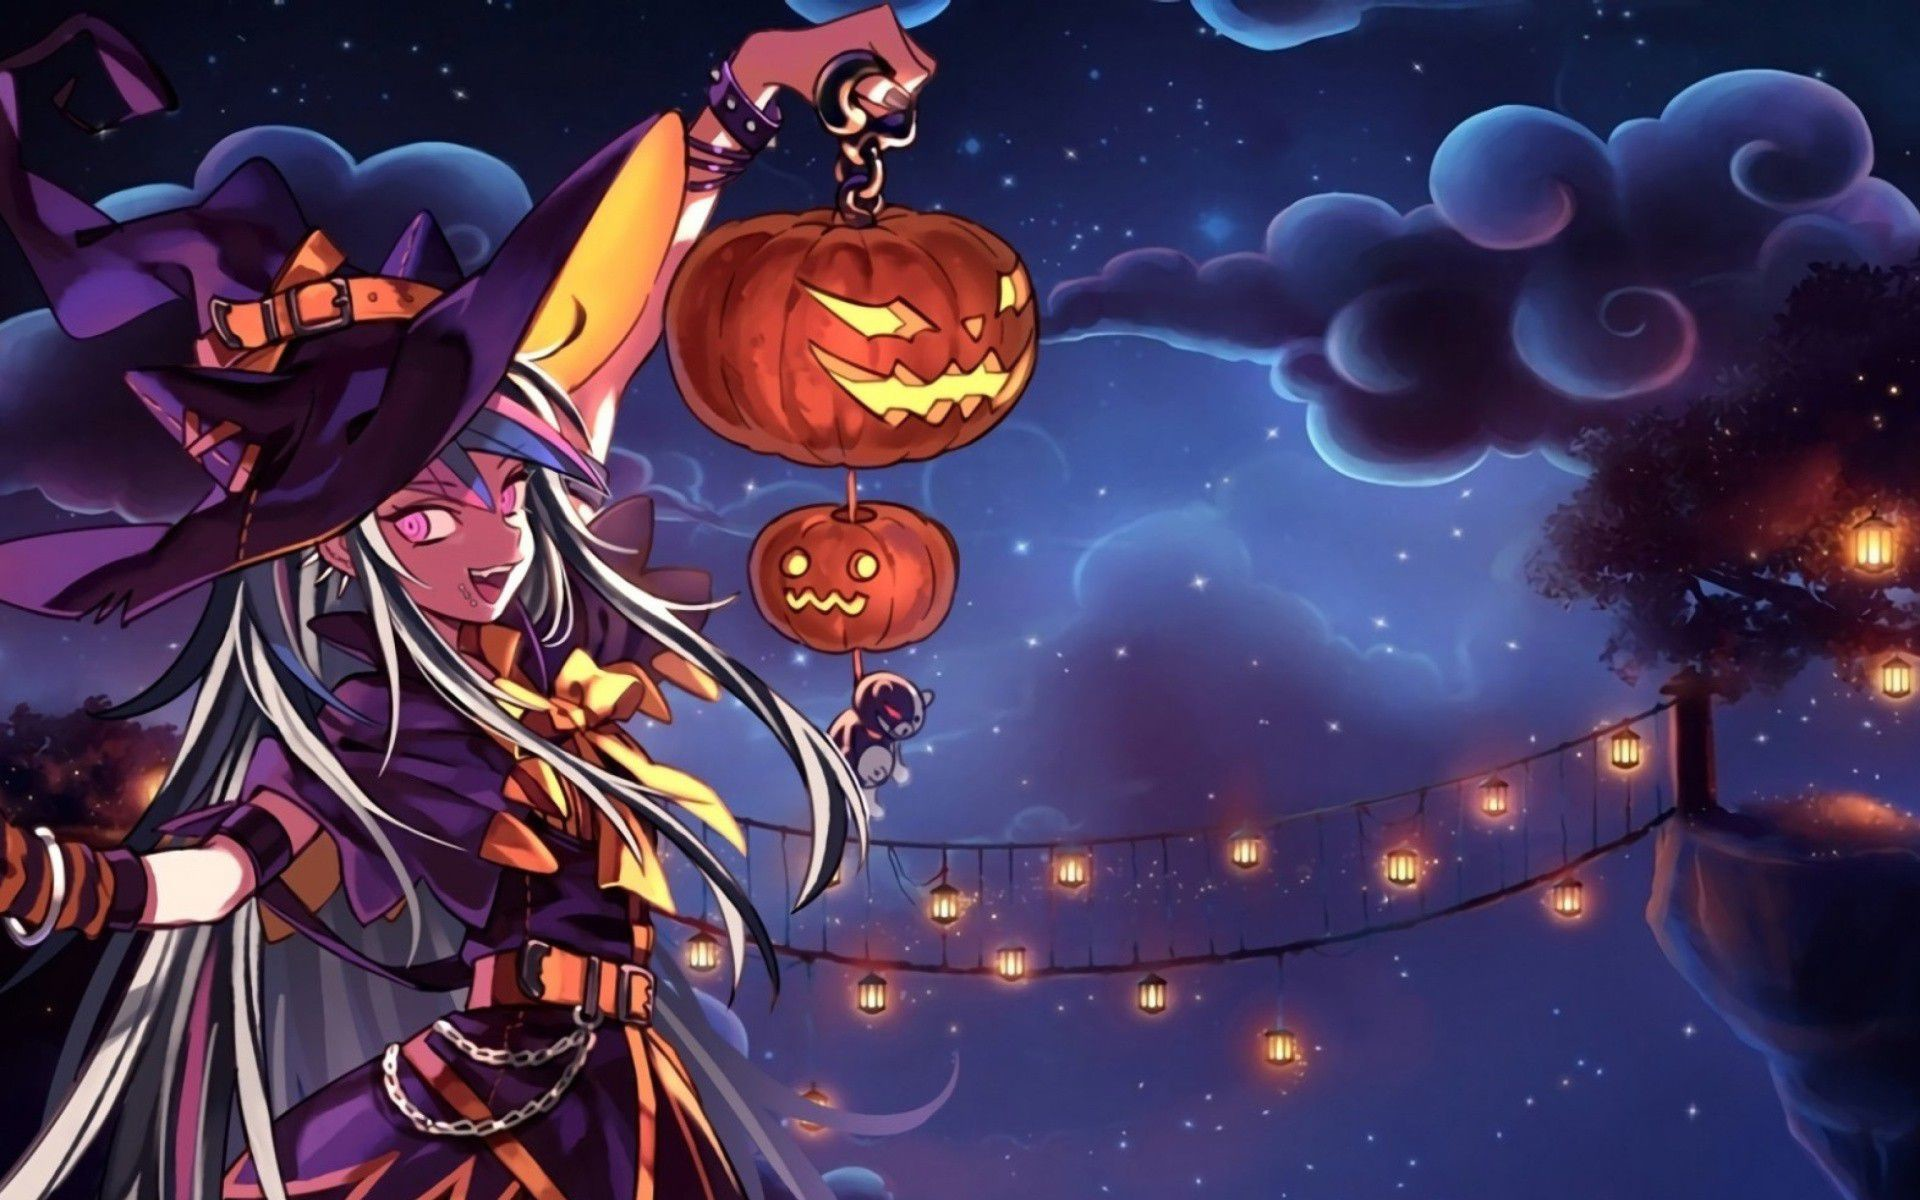 Fondos De Pc Anime: Anime Halloween Wallpaper (54+ Images